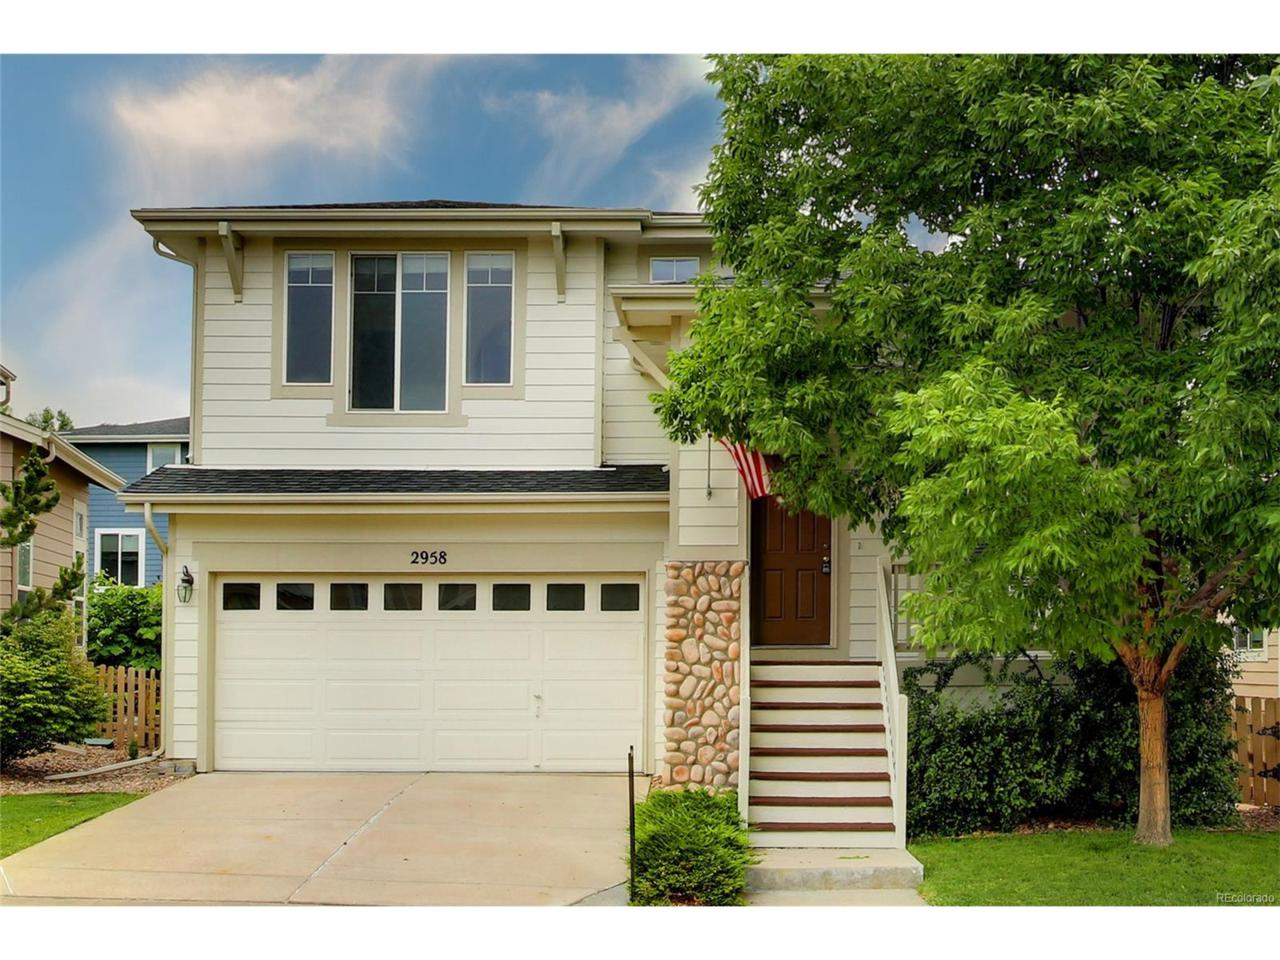 2958 Redhaven Way, Highlands Ranch, CO 80126 (MLS #4830851) :: 8z Real Estate